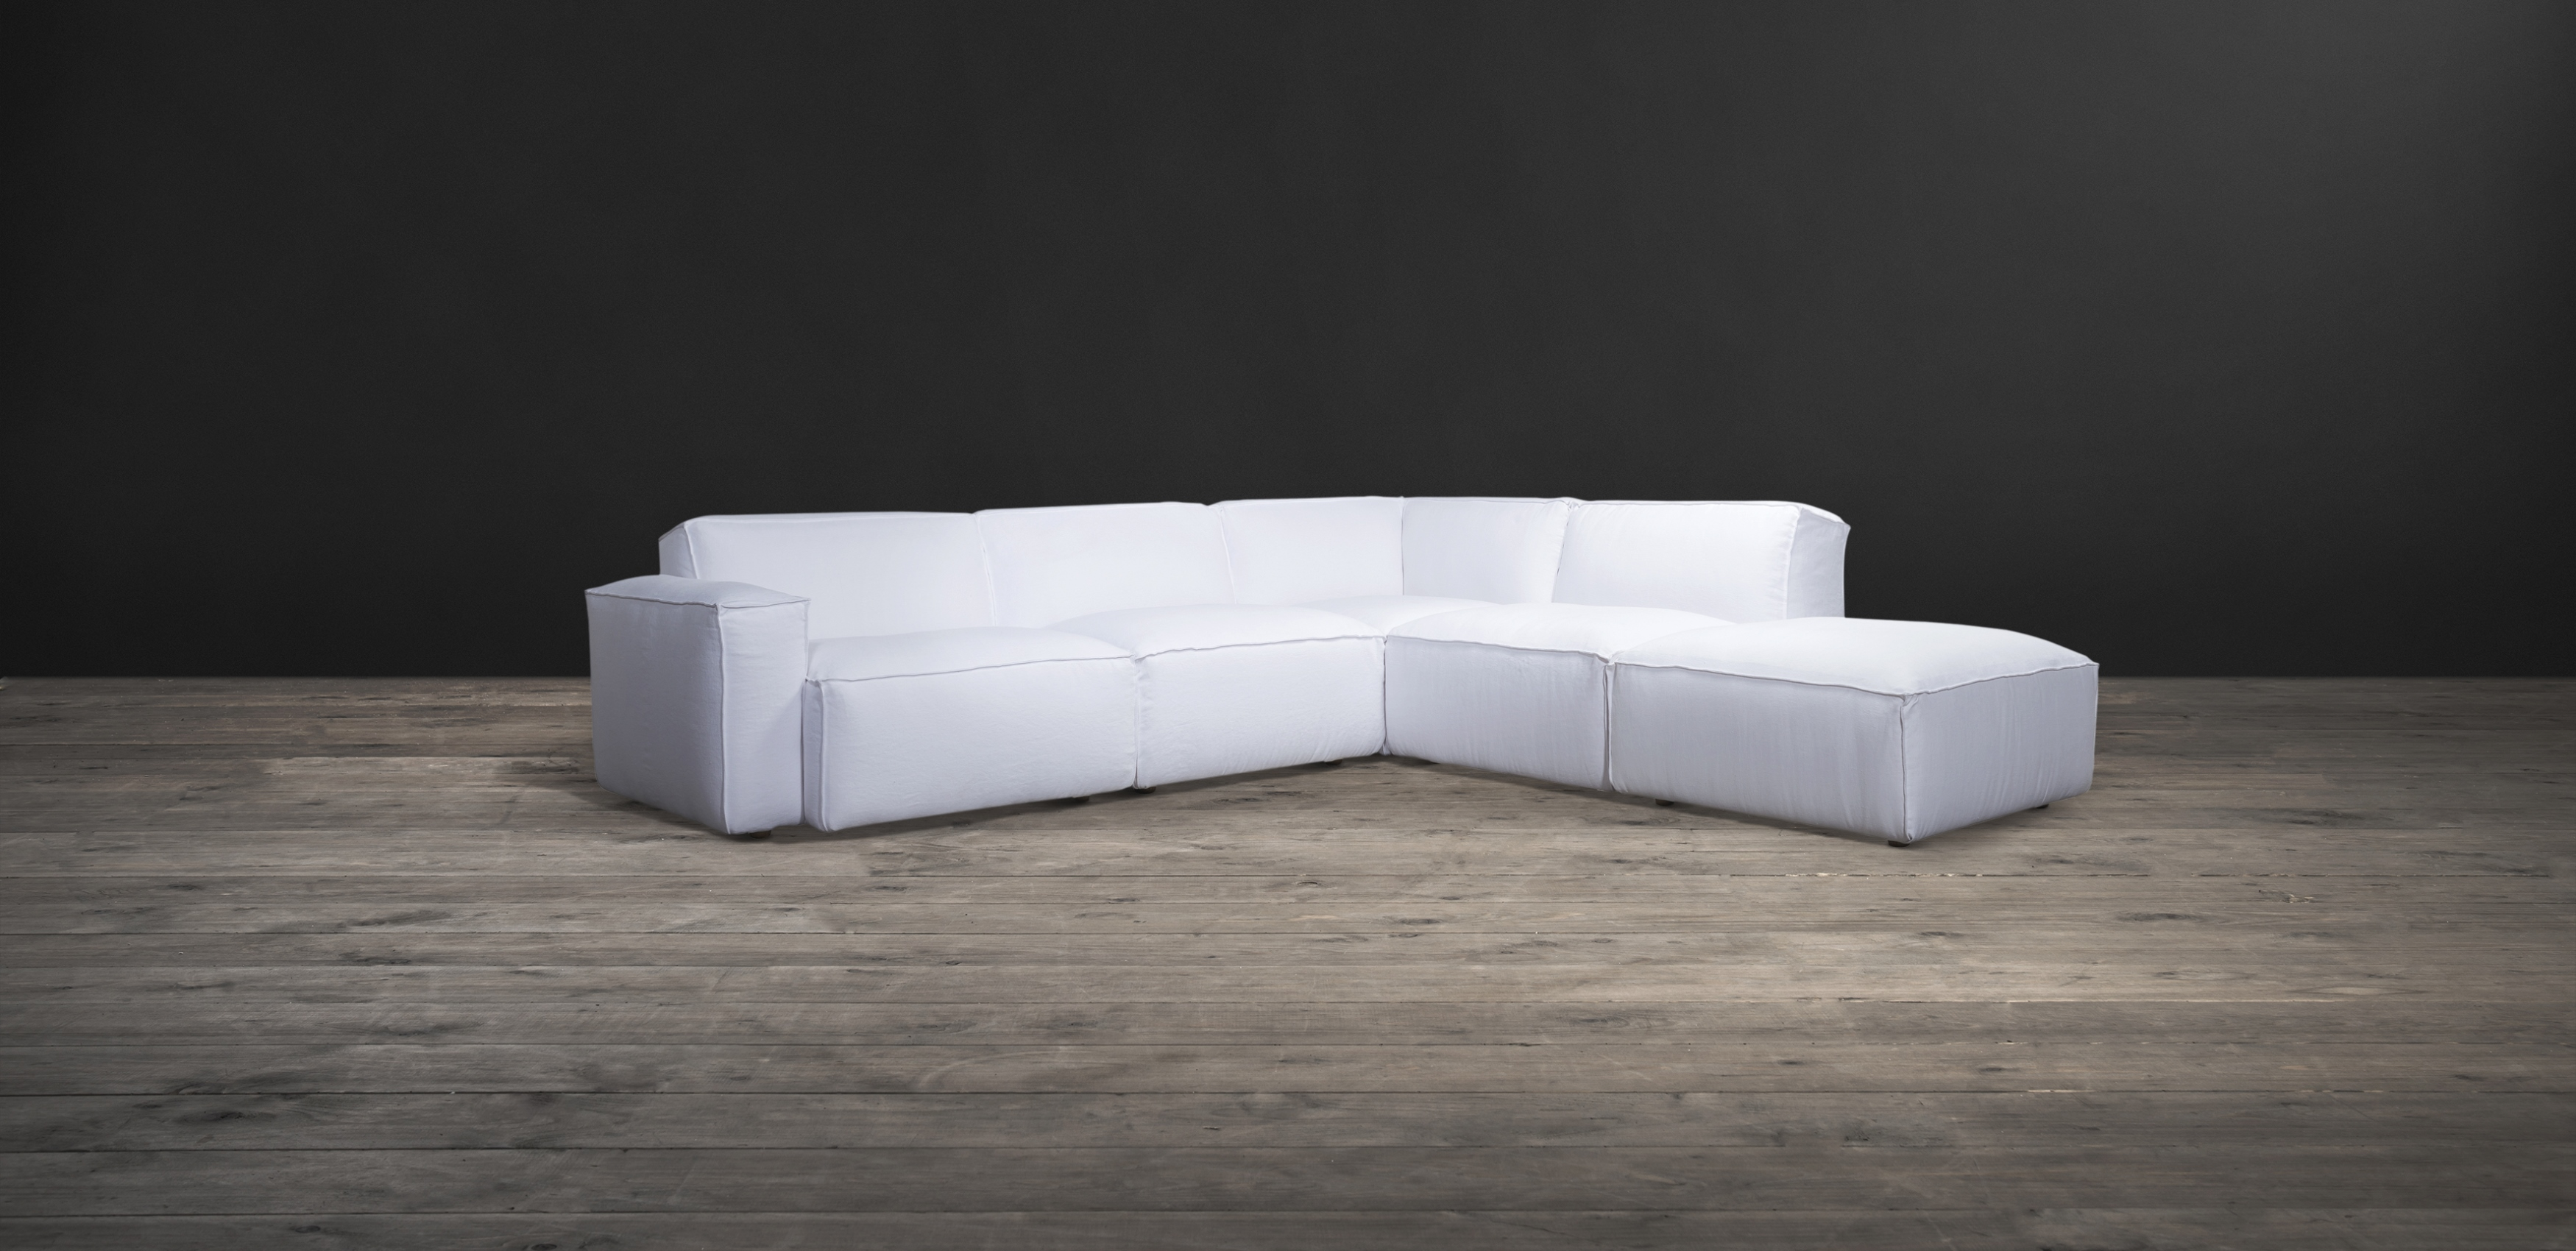 Leather amp Fabric Sectional Sofas Nirvana Medium  : nirvanamediumsectional whsipywhite2 from www.timothyoulton.com size 3500 x 1700 jpeg 1755kB